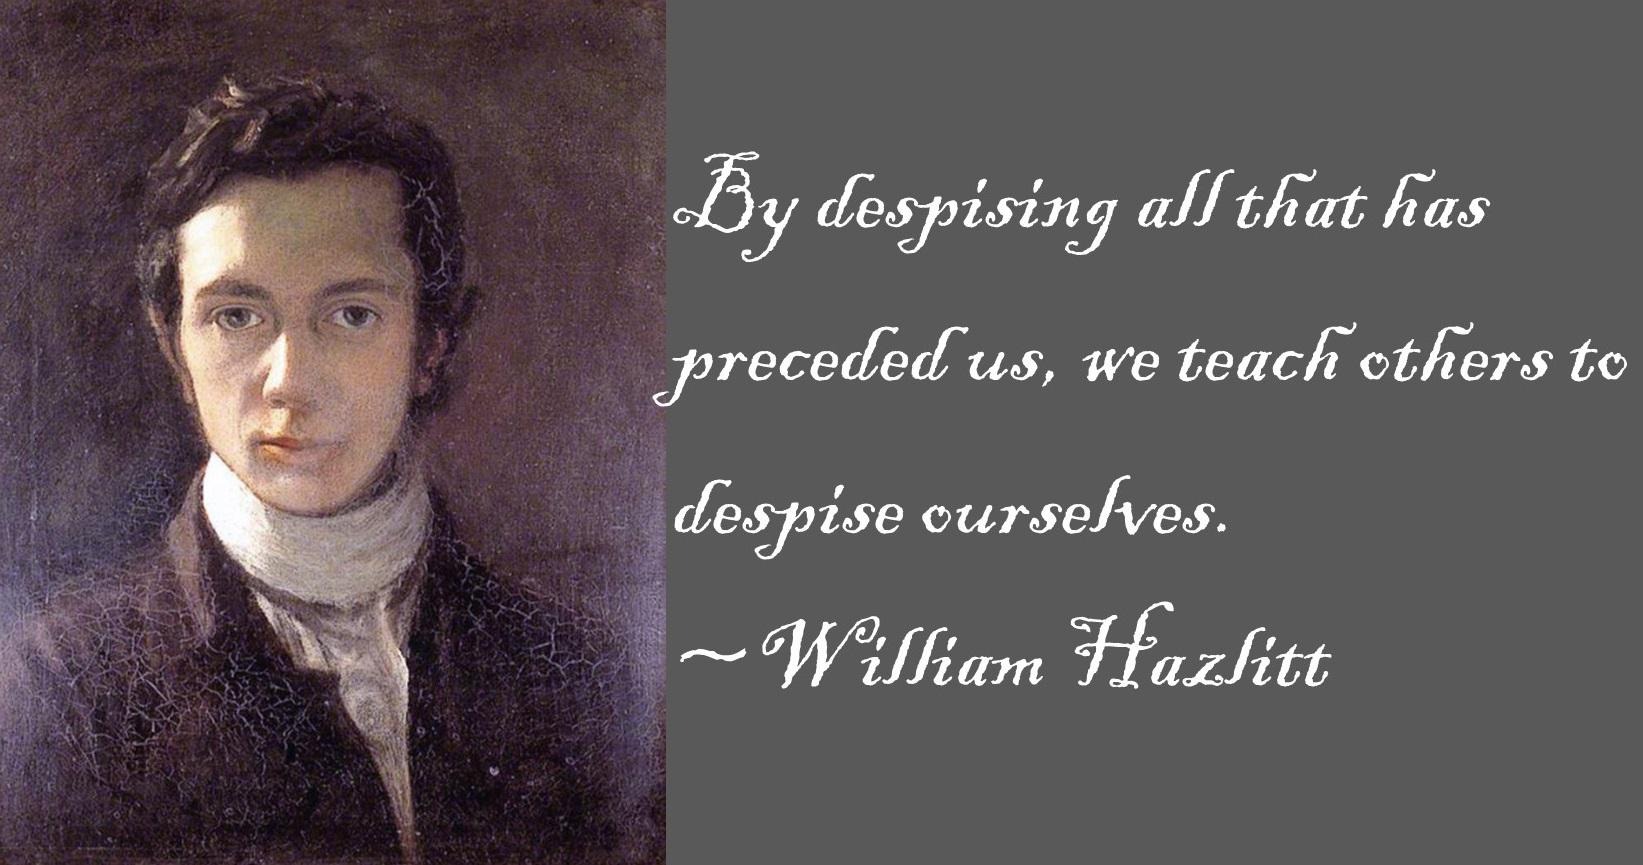 """By despising all that has preceded us, we teach others to despise ourselves."" ~William Hazlitt [OC] [1643 x 865]"